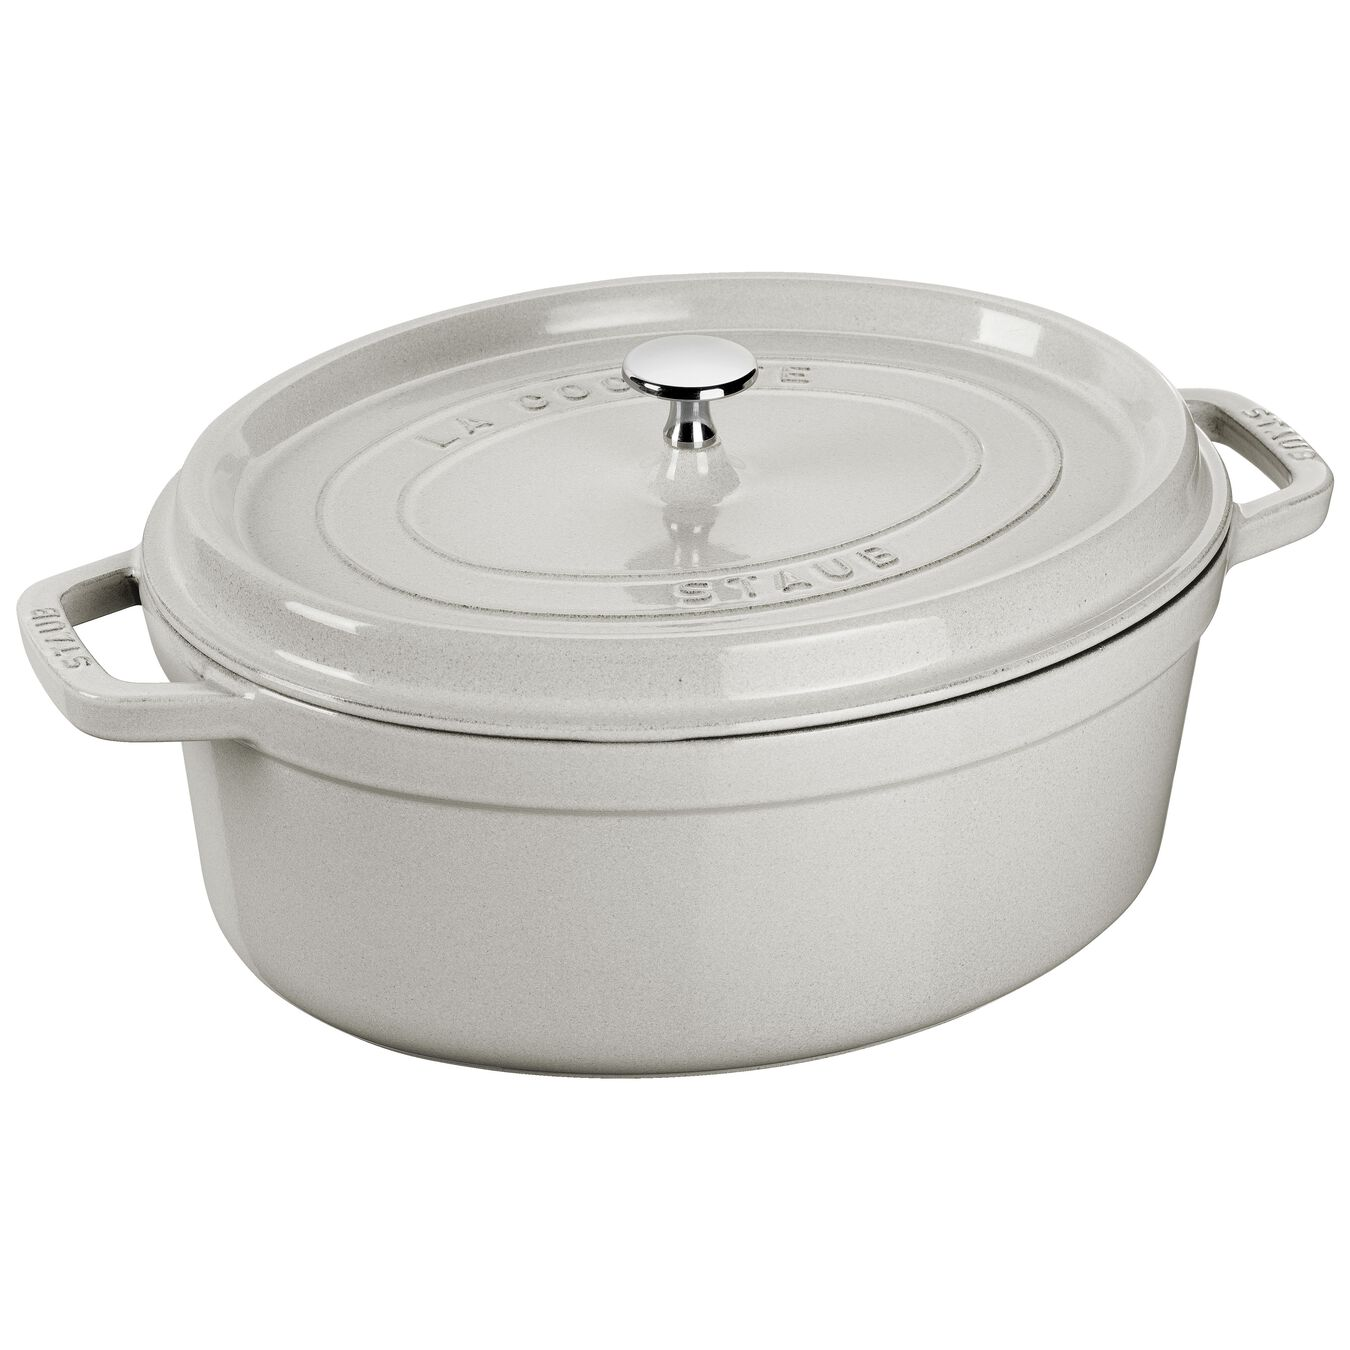 4.25 l oval Cocotte, white truffle,,large 1